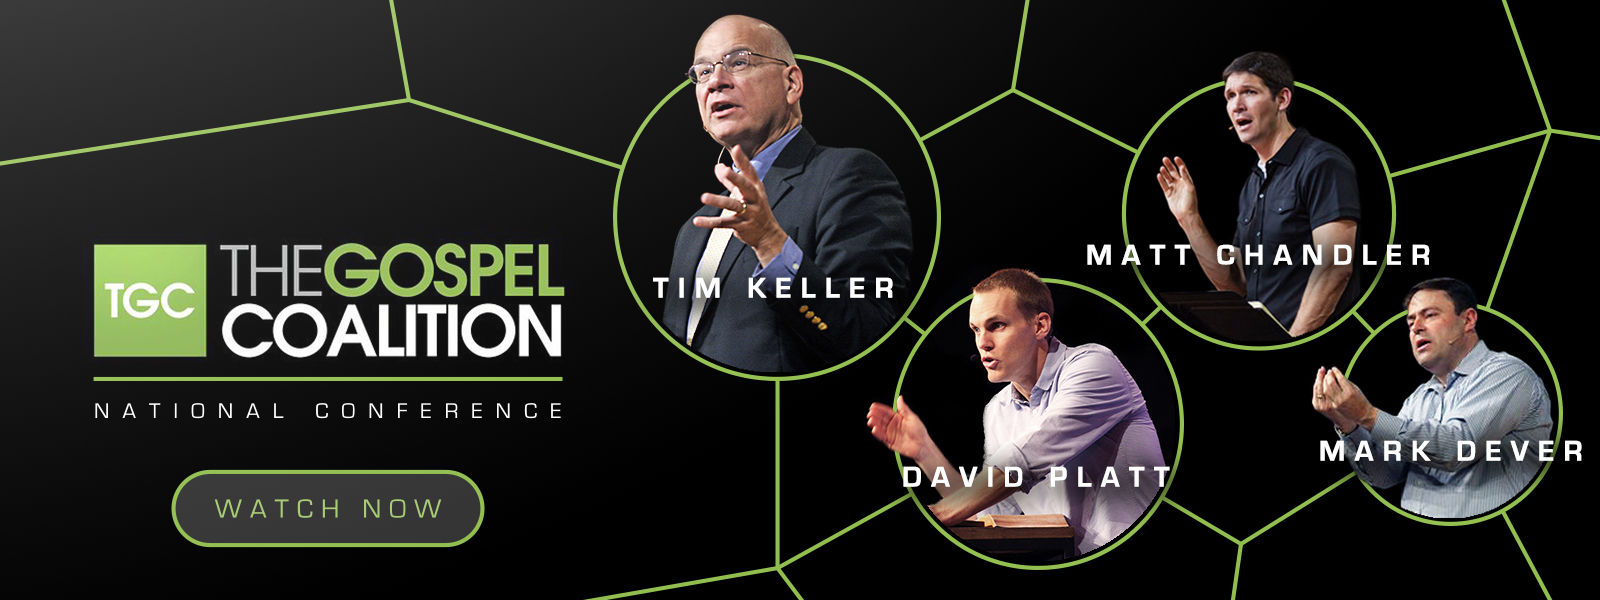 THE GOSPEL COALITION CONFERENCE